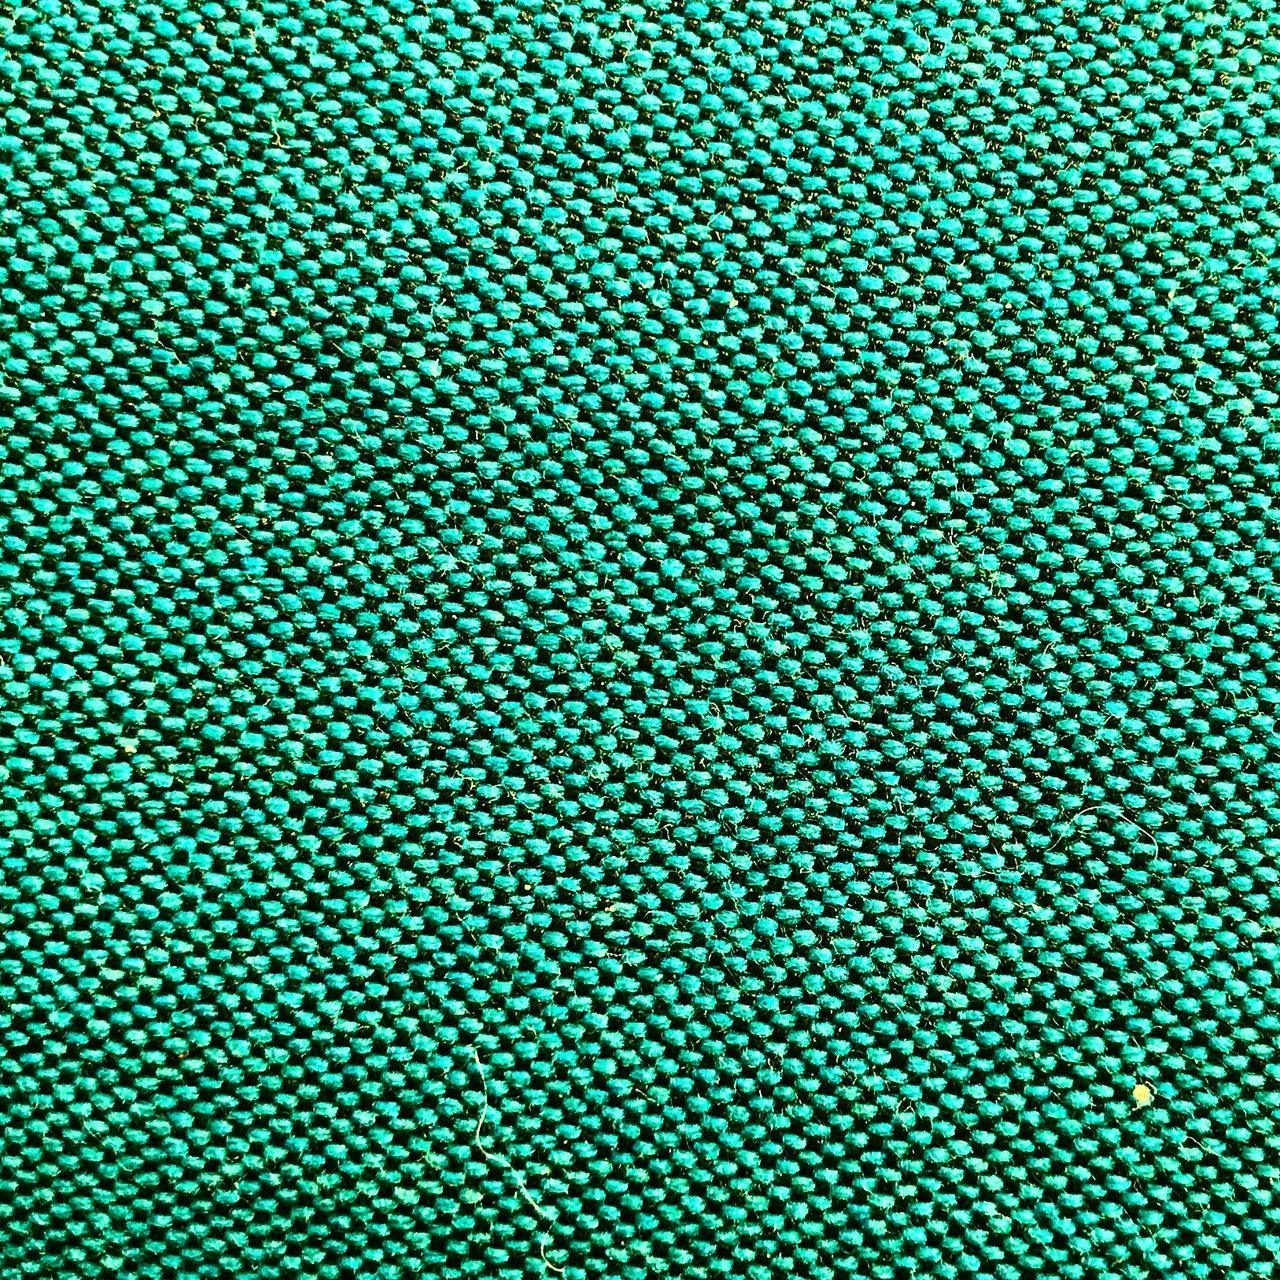 backgrounds, full frame, pattern, textured, green color, close-up, no people, textile, blue, indoors, material, shape, flooring, green, design, abstract, repetition, high angle view, woven, textured effect, luxury